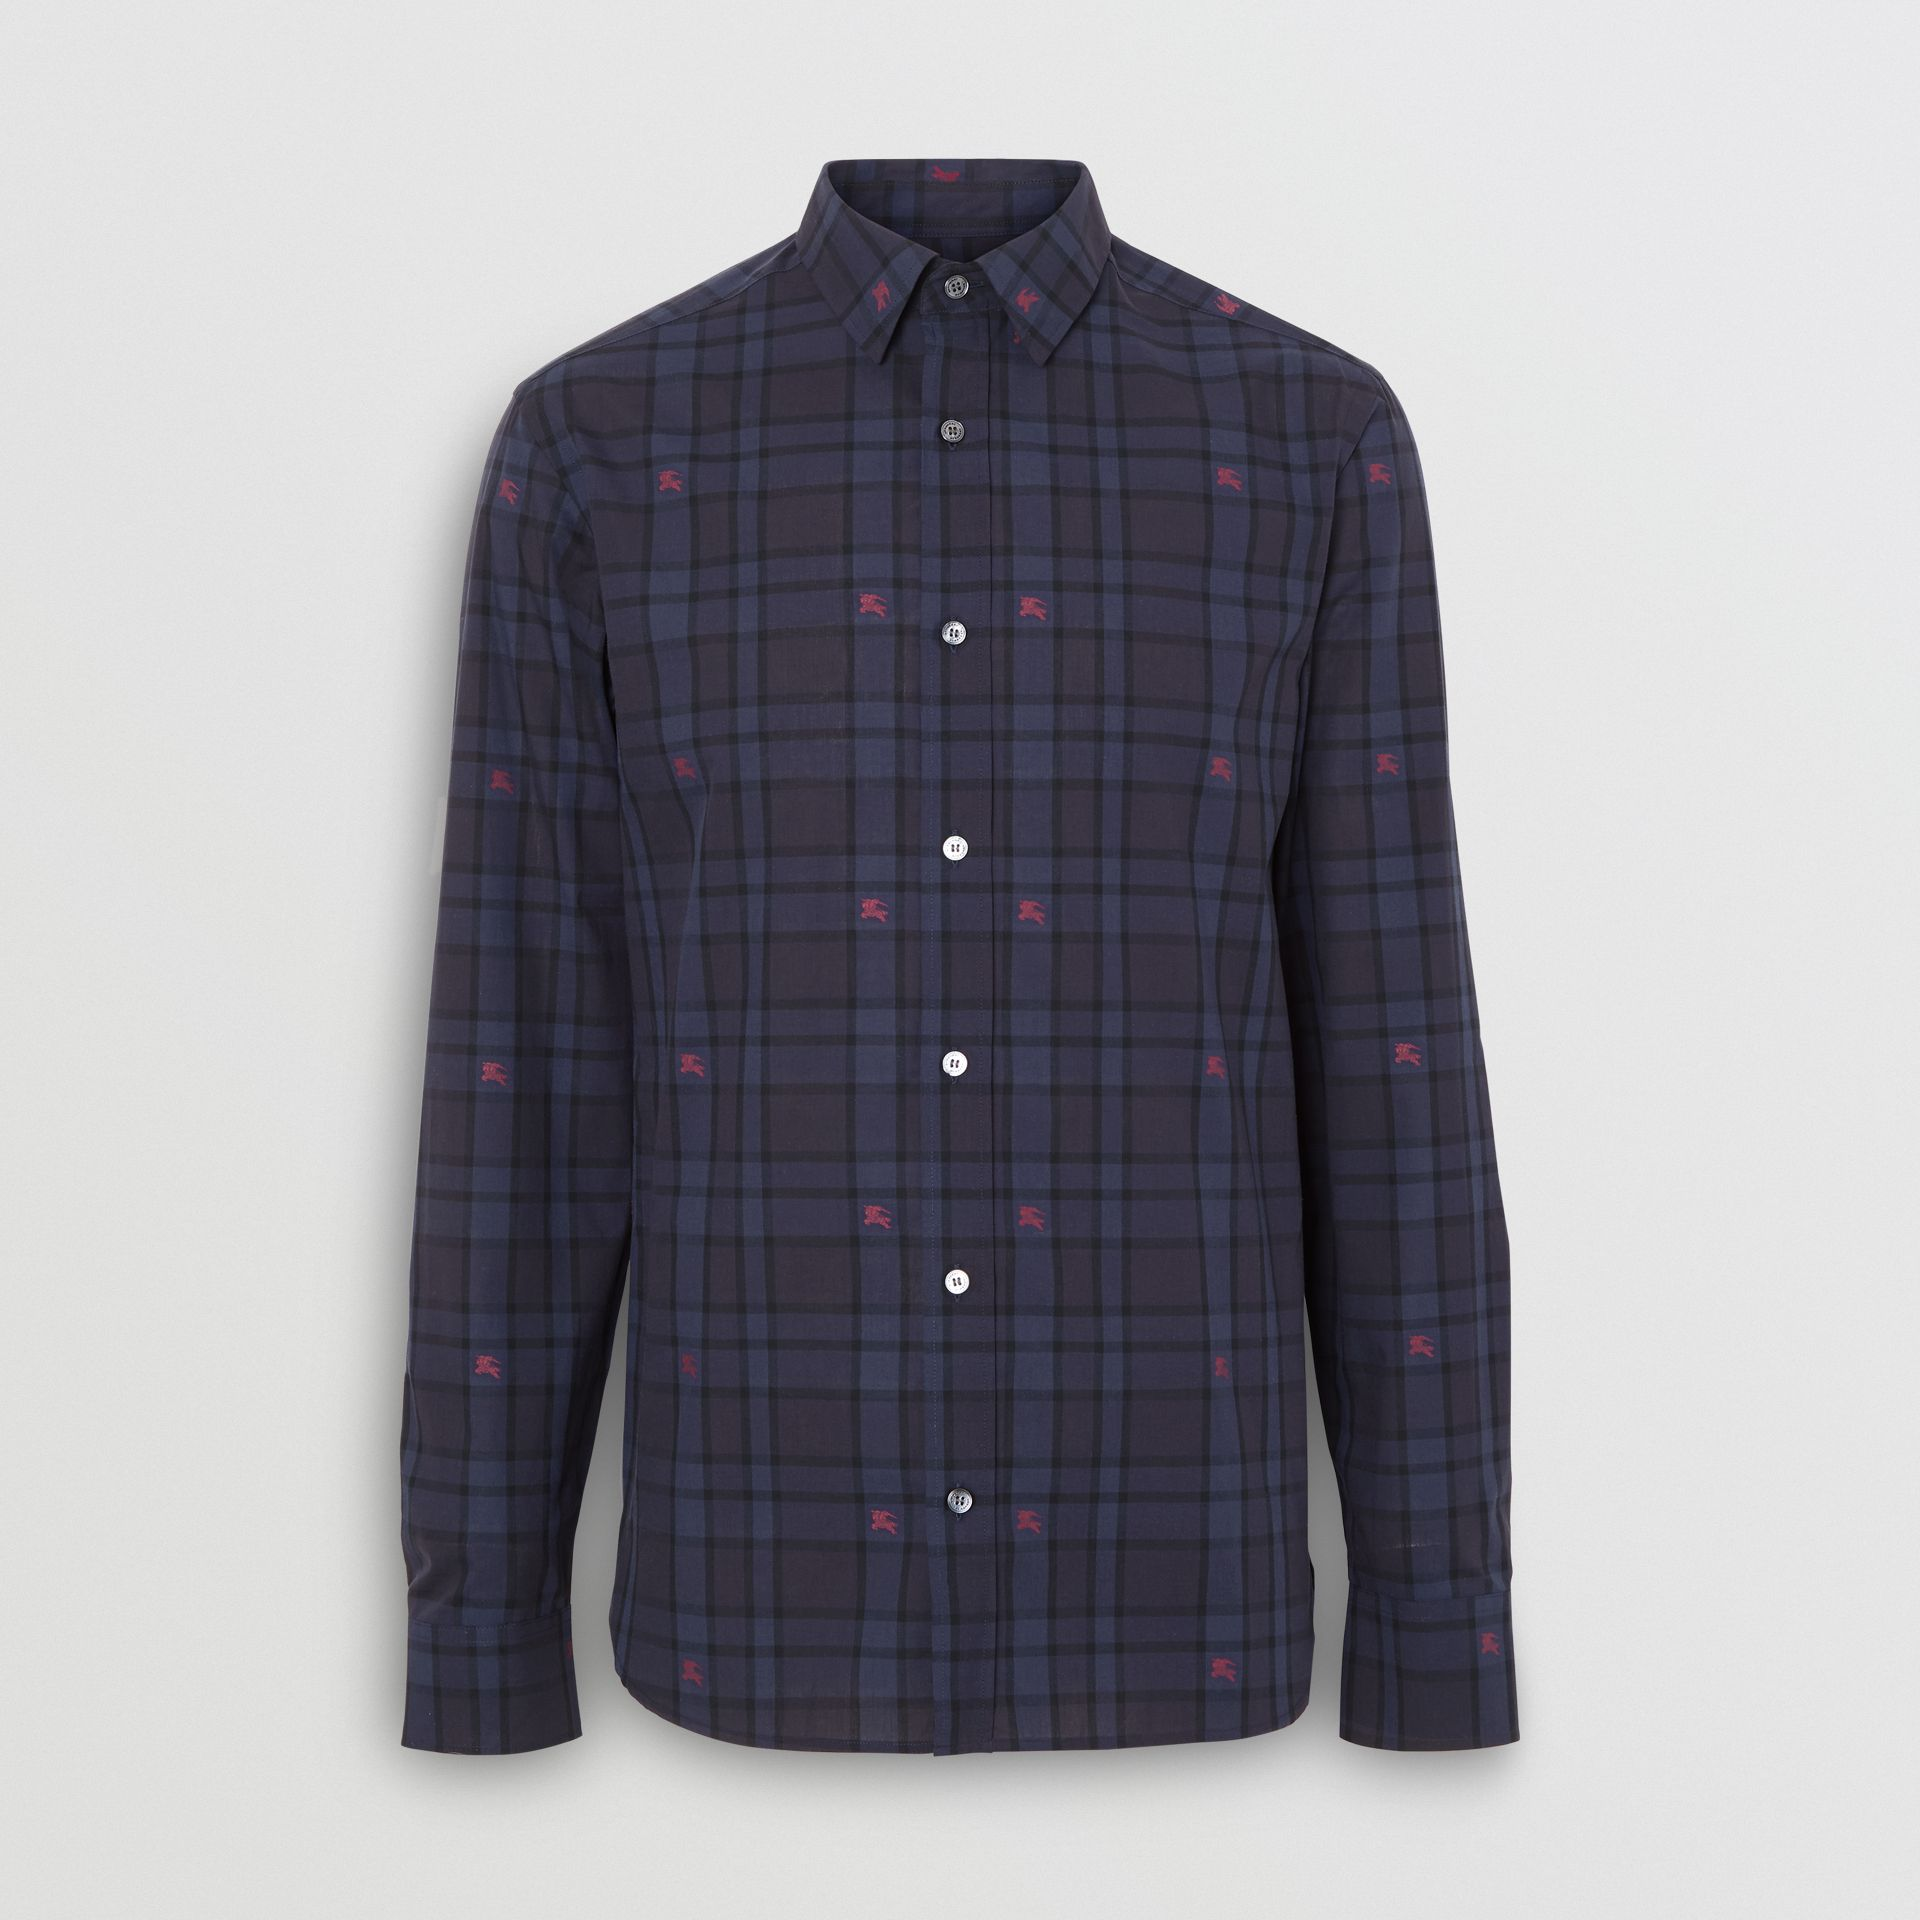 Equestrian Knight Check Cotton Shirt in Dark Indigo - Men | Burberry Singapore - gallery image 3